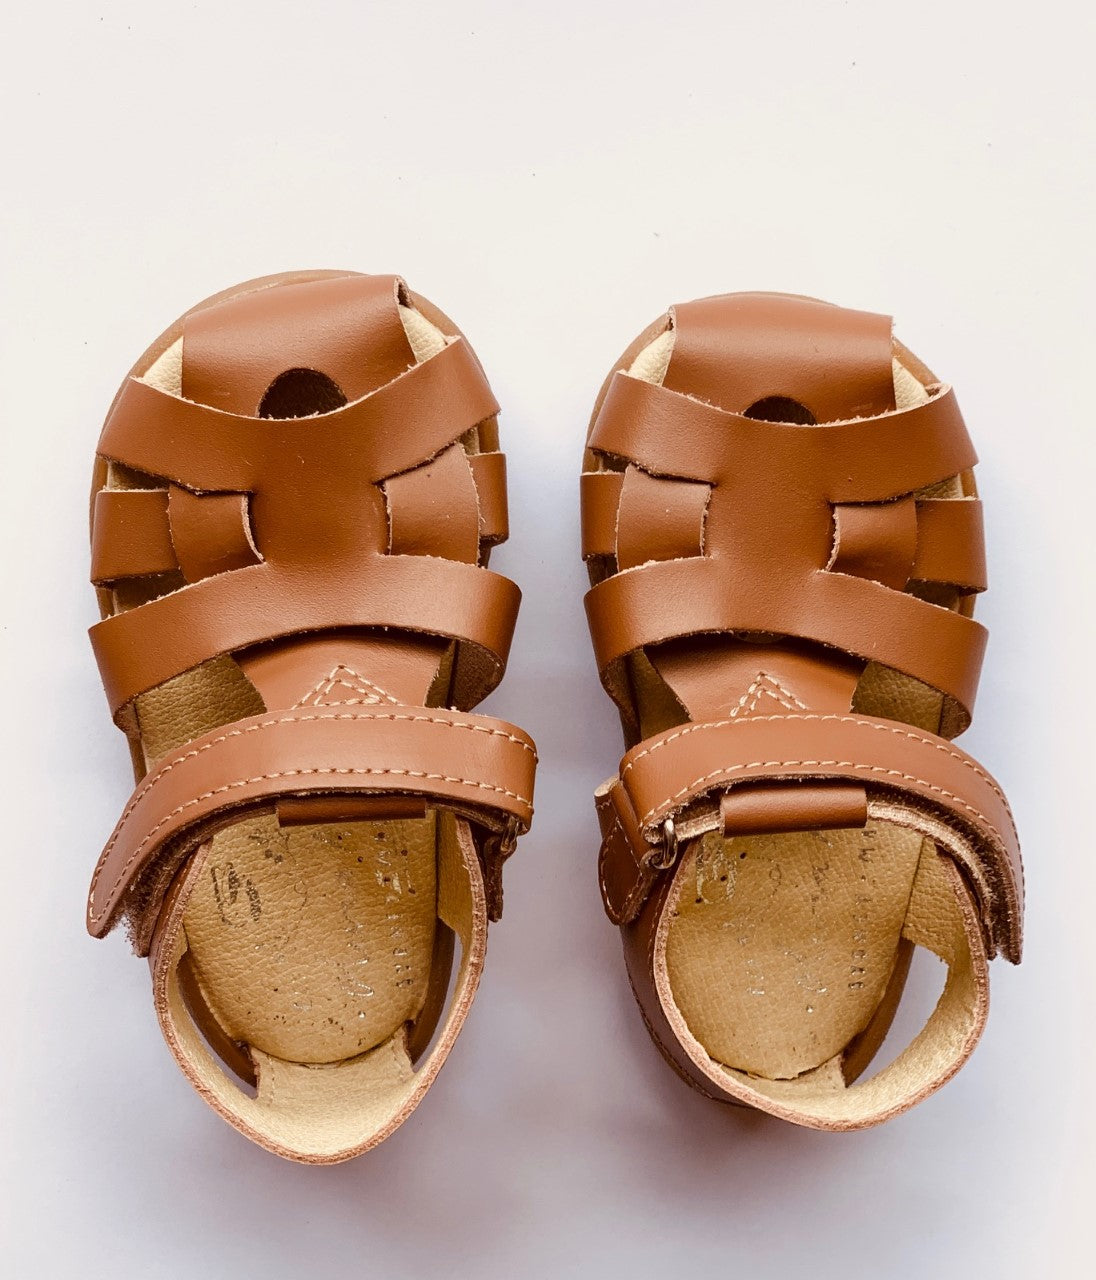 The Olivia Ann Roman sandals are perfect for everyday wear for your little one. Their unique design keeps their feet comfortable and promotes healthy foot development. Podiatrist approved.